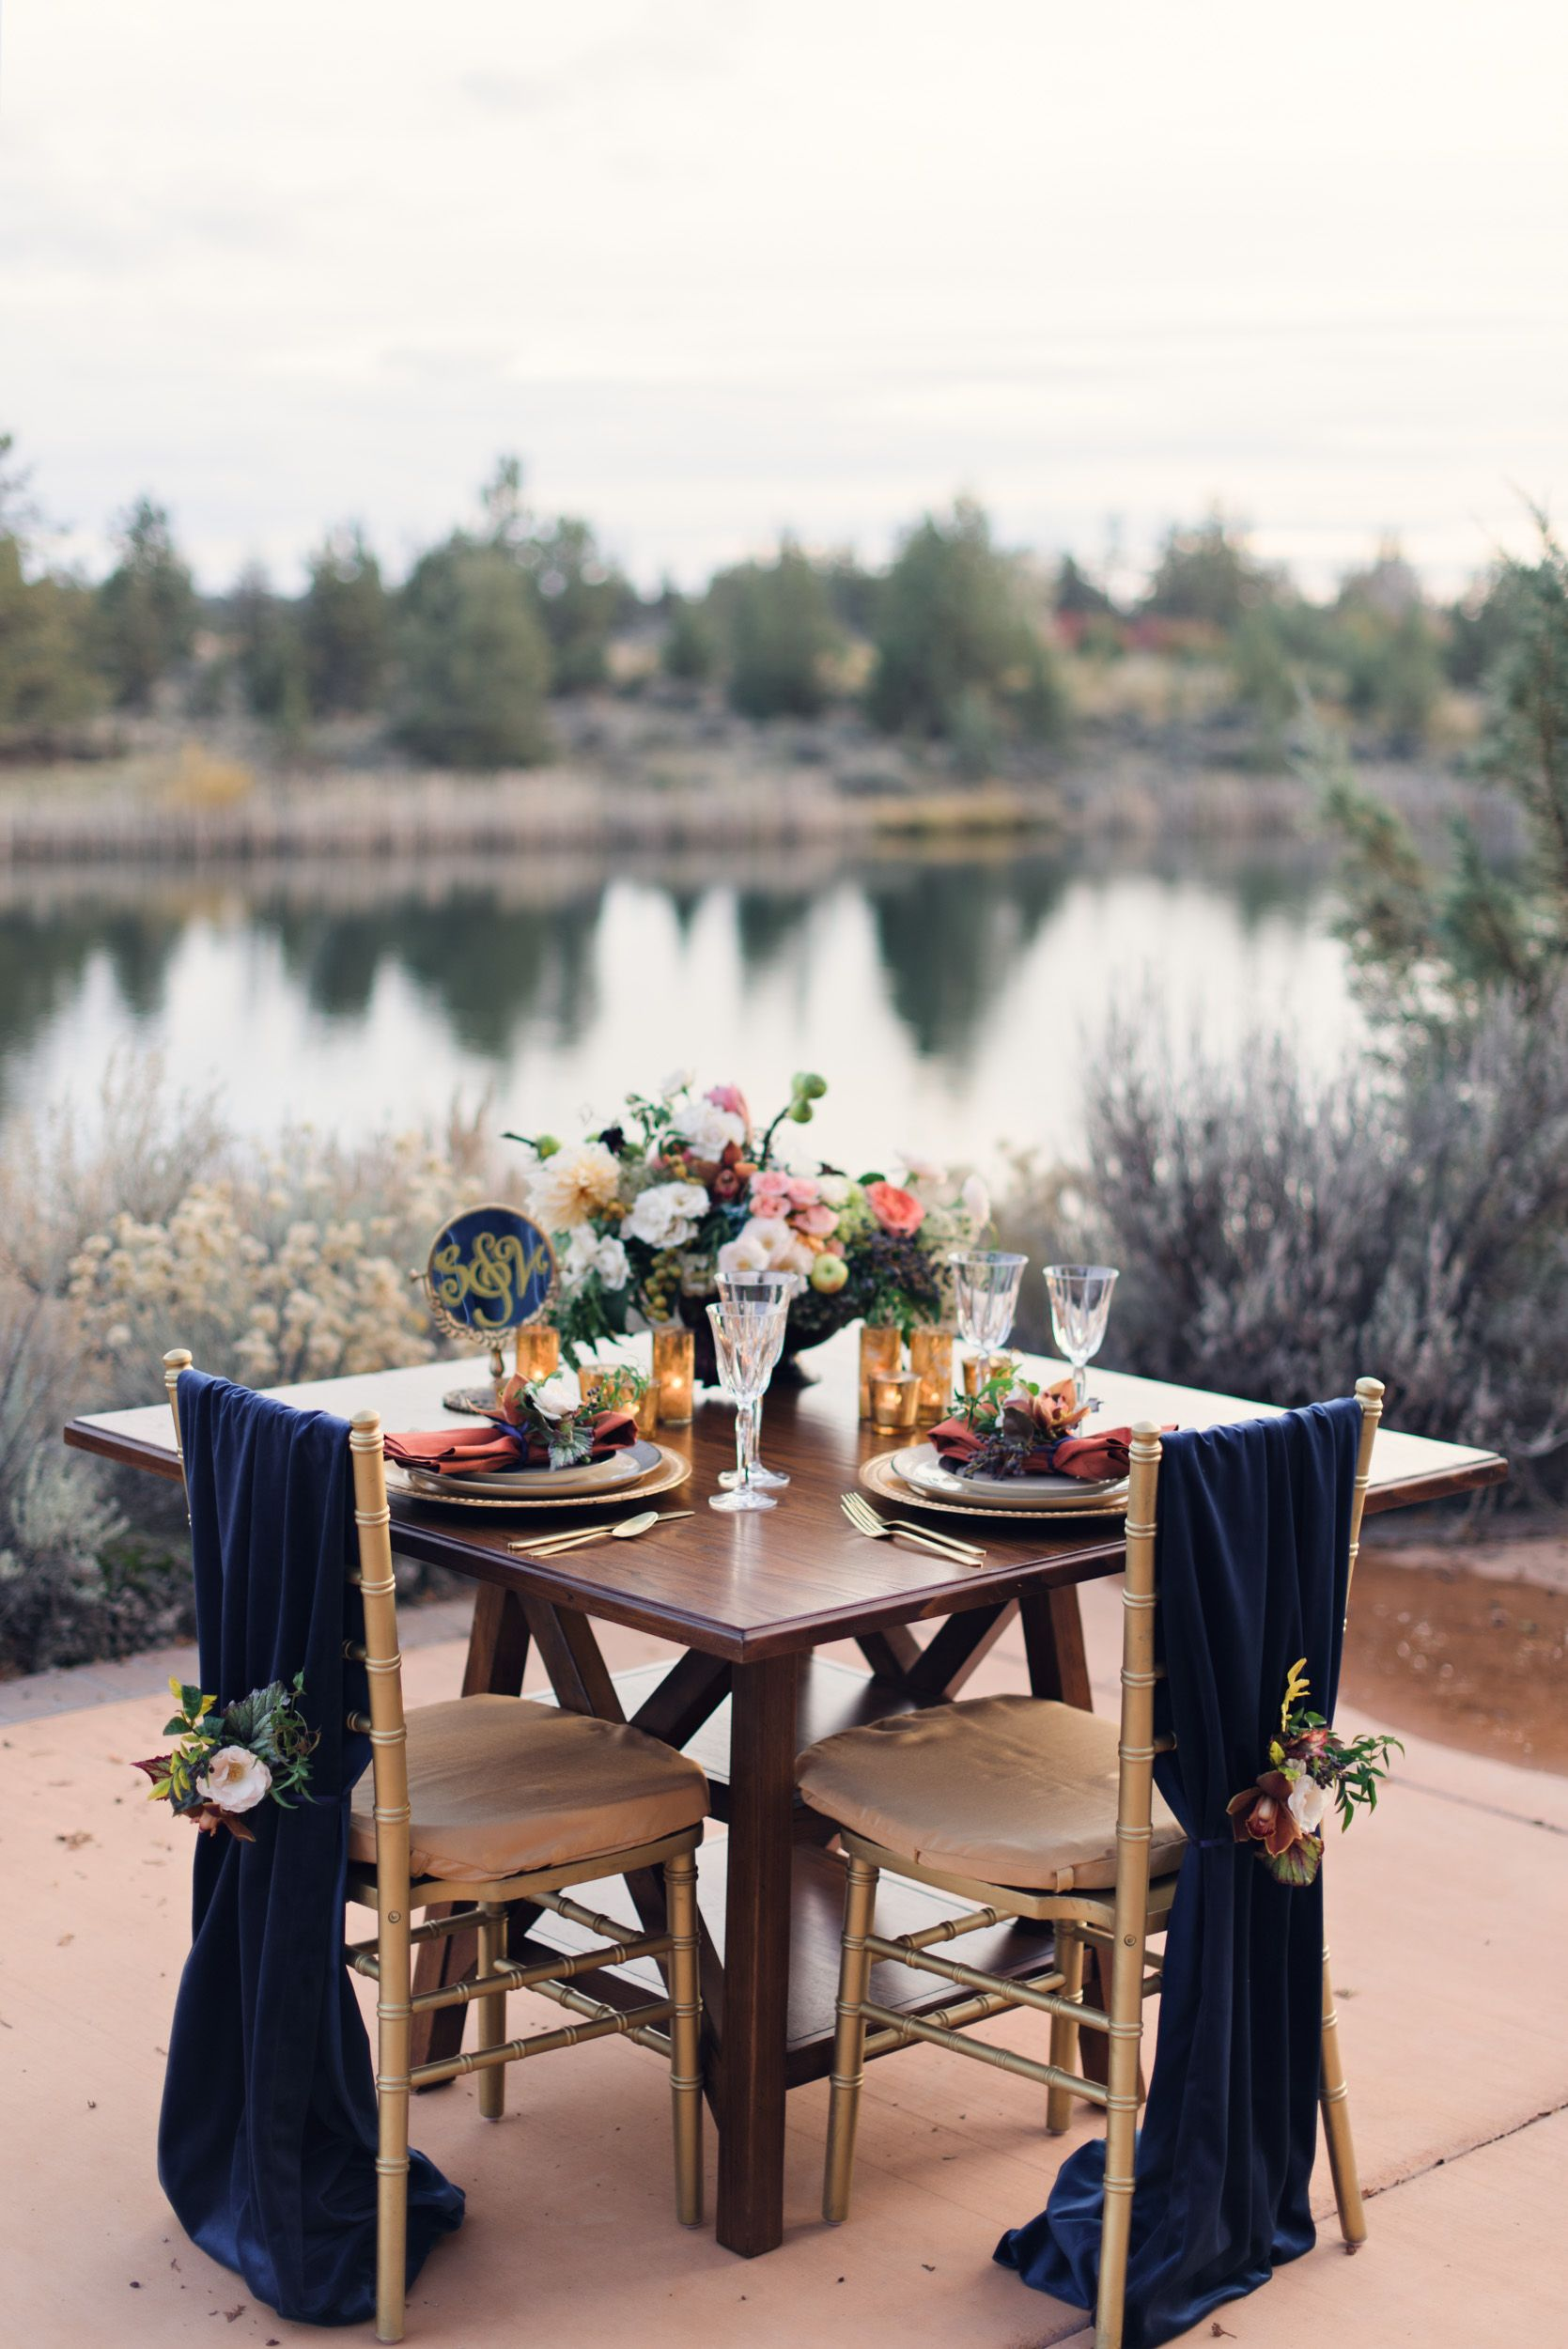 Ranch at the Canyons Styled Shoot      Photographer | Benjamin Edwards Photography  Coordination & Design | Events by Mint  Floral | Mint Floral   Bride's Dress | Bella Brides Bend  Tux | Black Tux  Hair & Makeup | Kate Tuma  Linens | La Tavola Fine Linens  Rentals | West Coast Event Productions  Cake | Foxtail Bakery  Paper Goods & Calligraphy | Shari Denfeld  Signage & Calligraphy | Chalked Hand Lettered